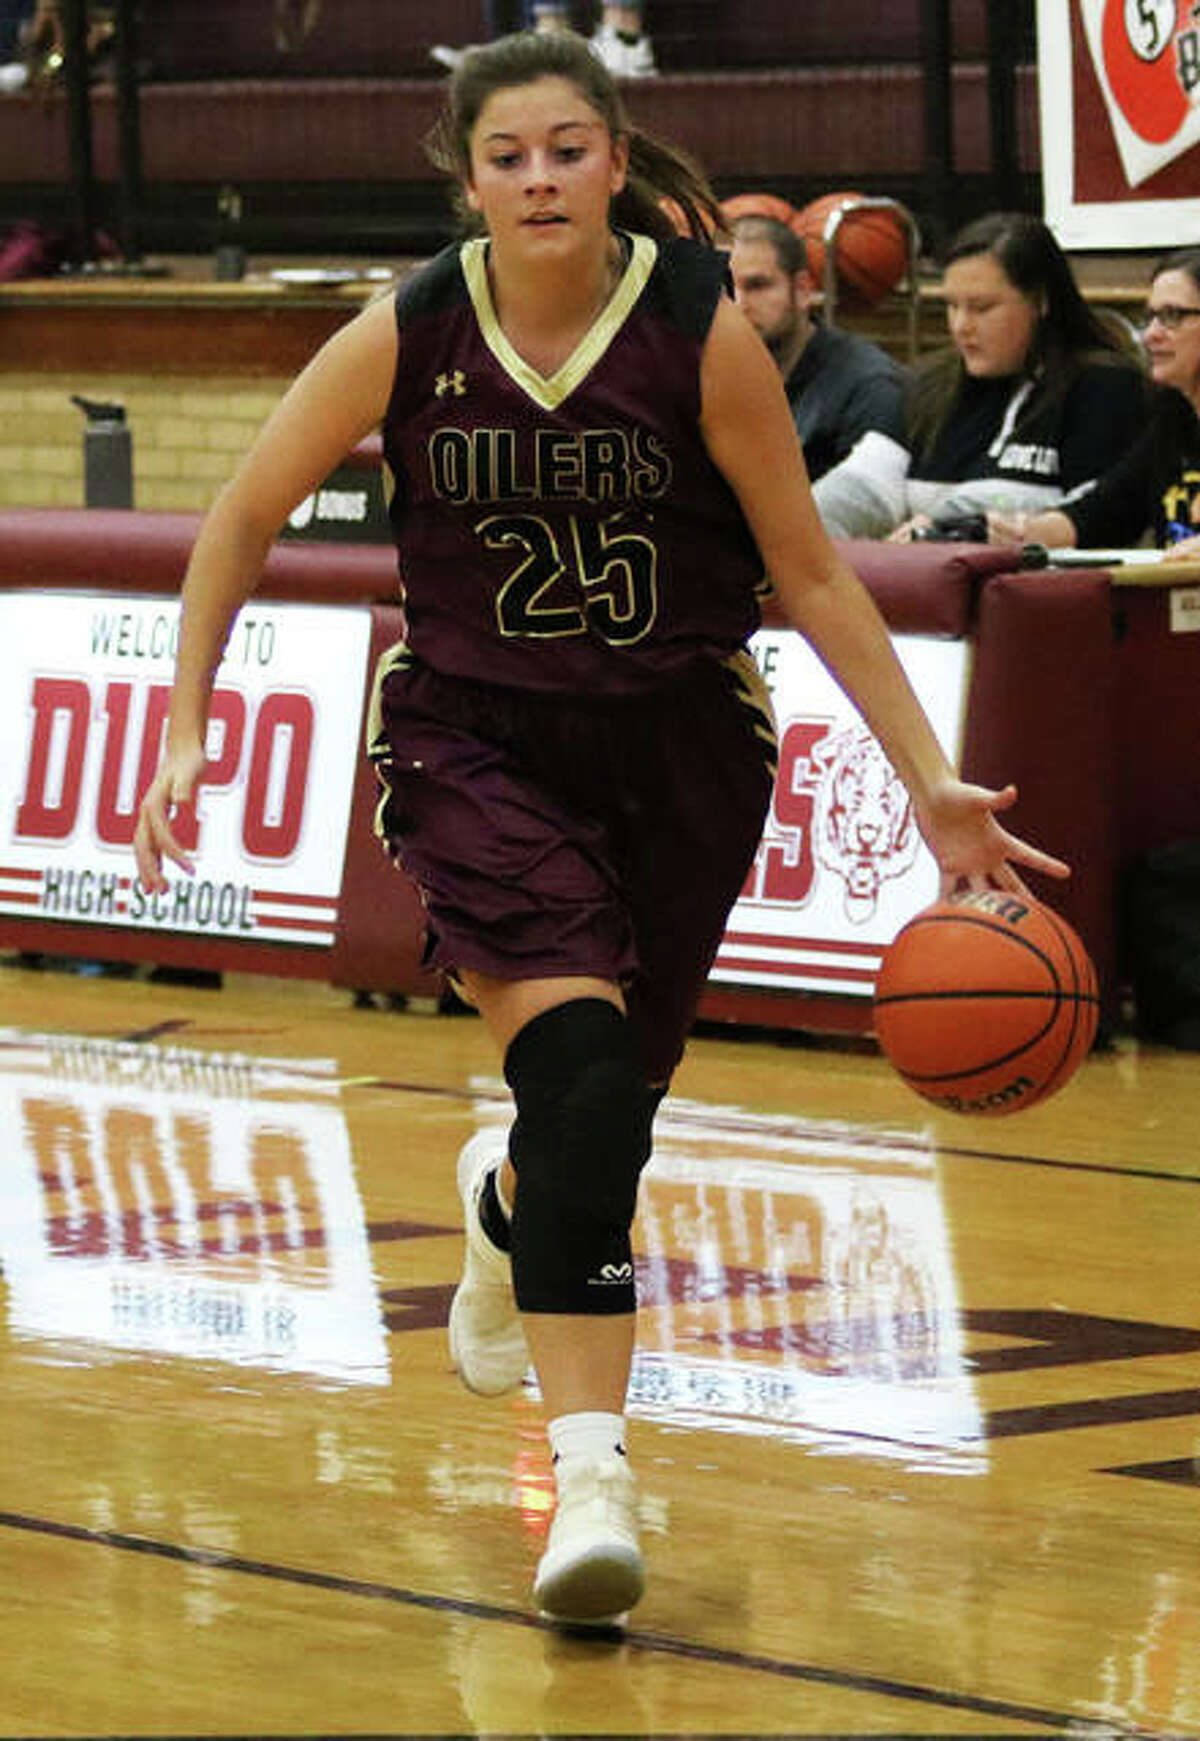 EA-WR's Hannah Allen, shown pushing the ball upcourt in Tuesday's win over Roxana, scored 11 points on Thursday night to lead the Oilers to a semifinal win over Dupo in the Cat Classic in Dupo.